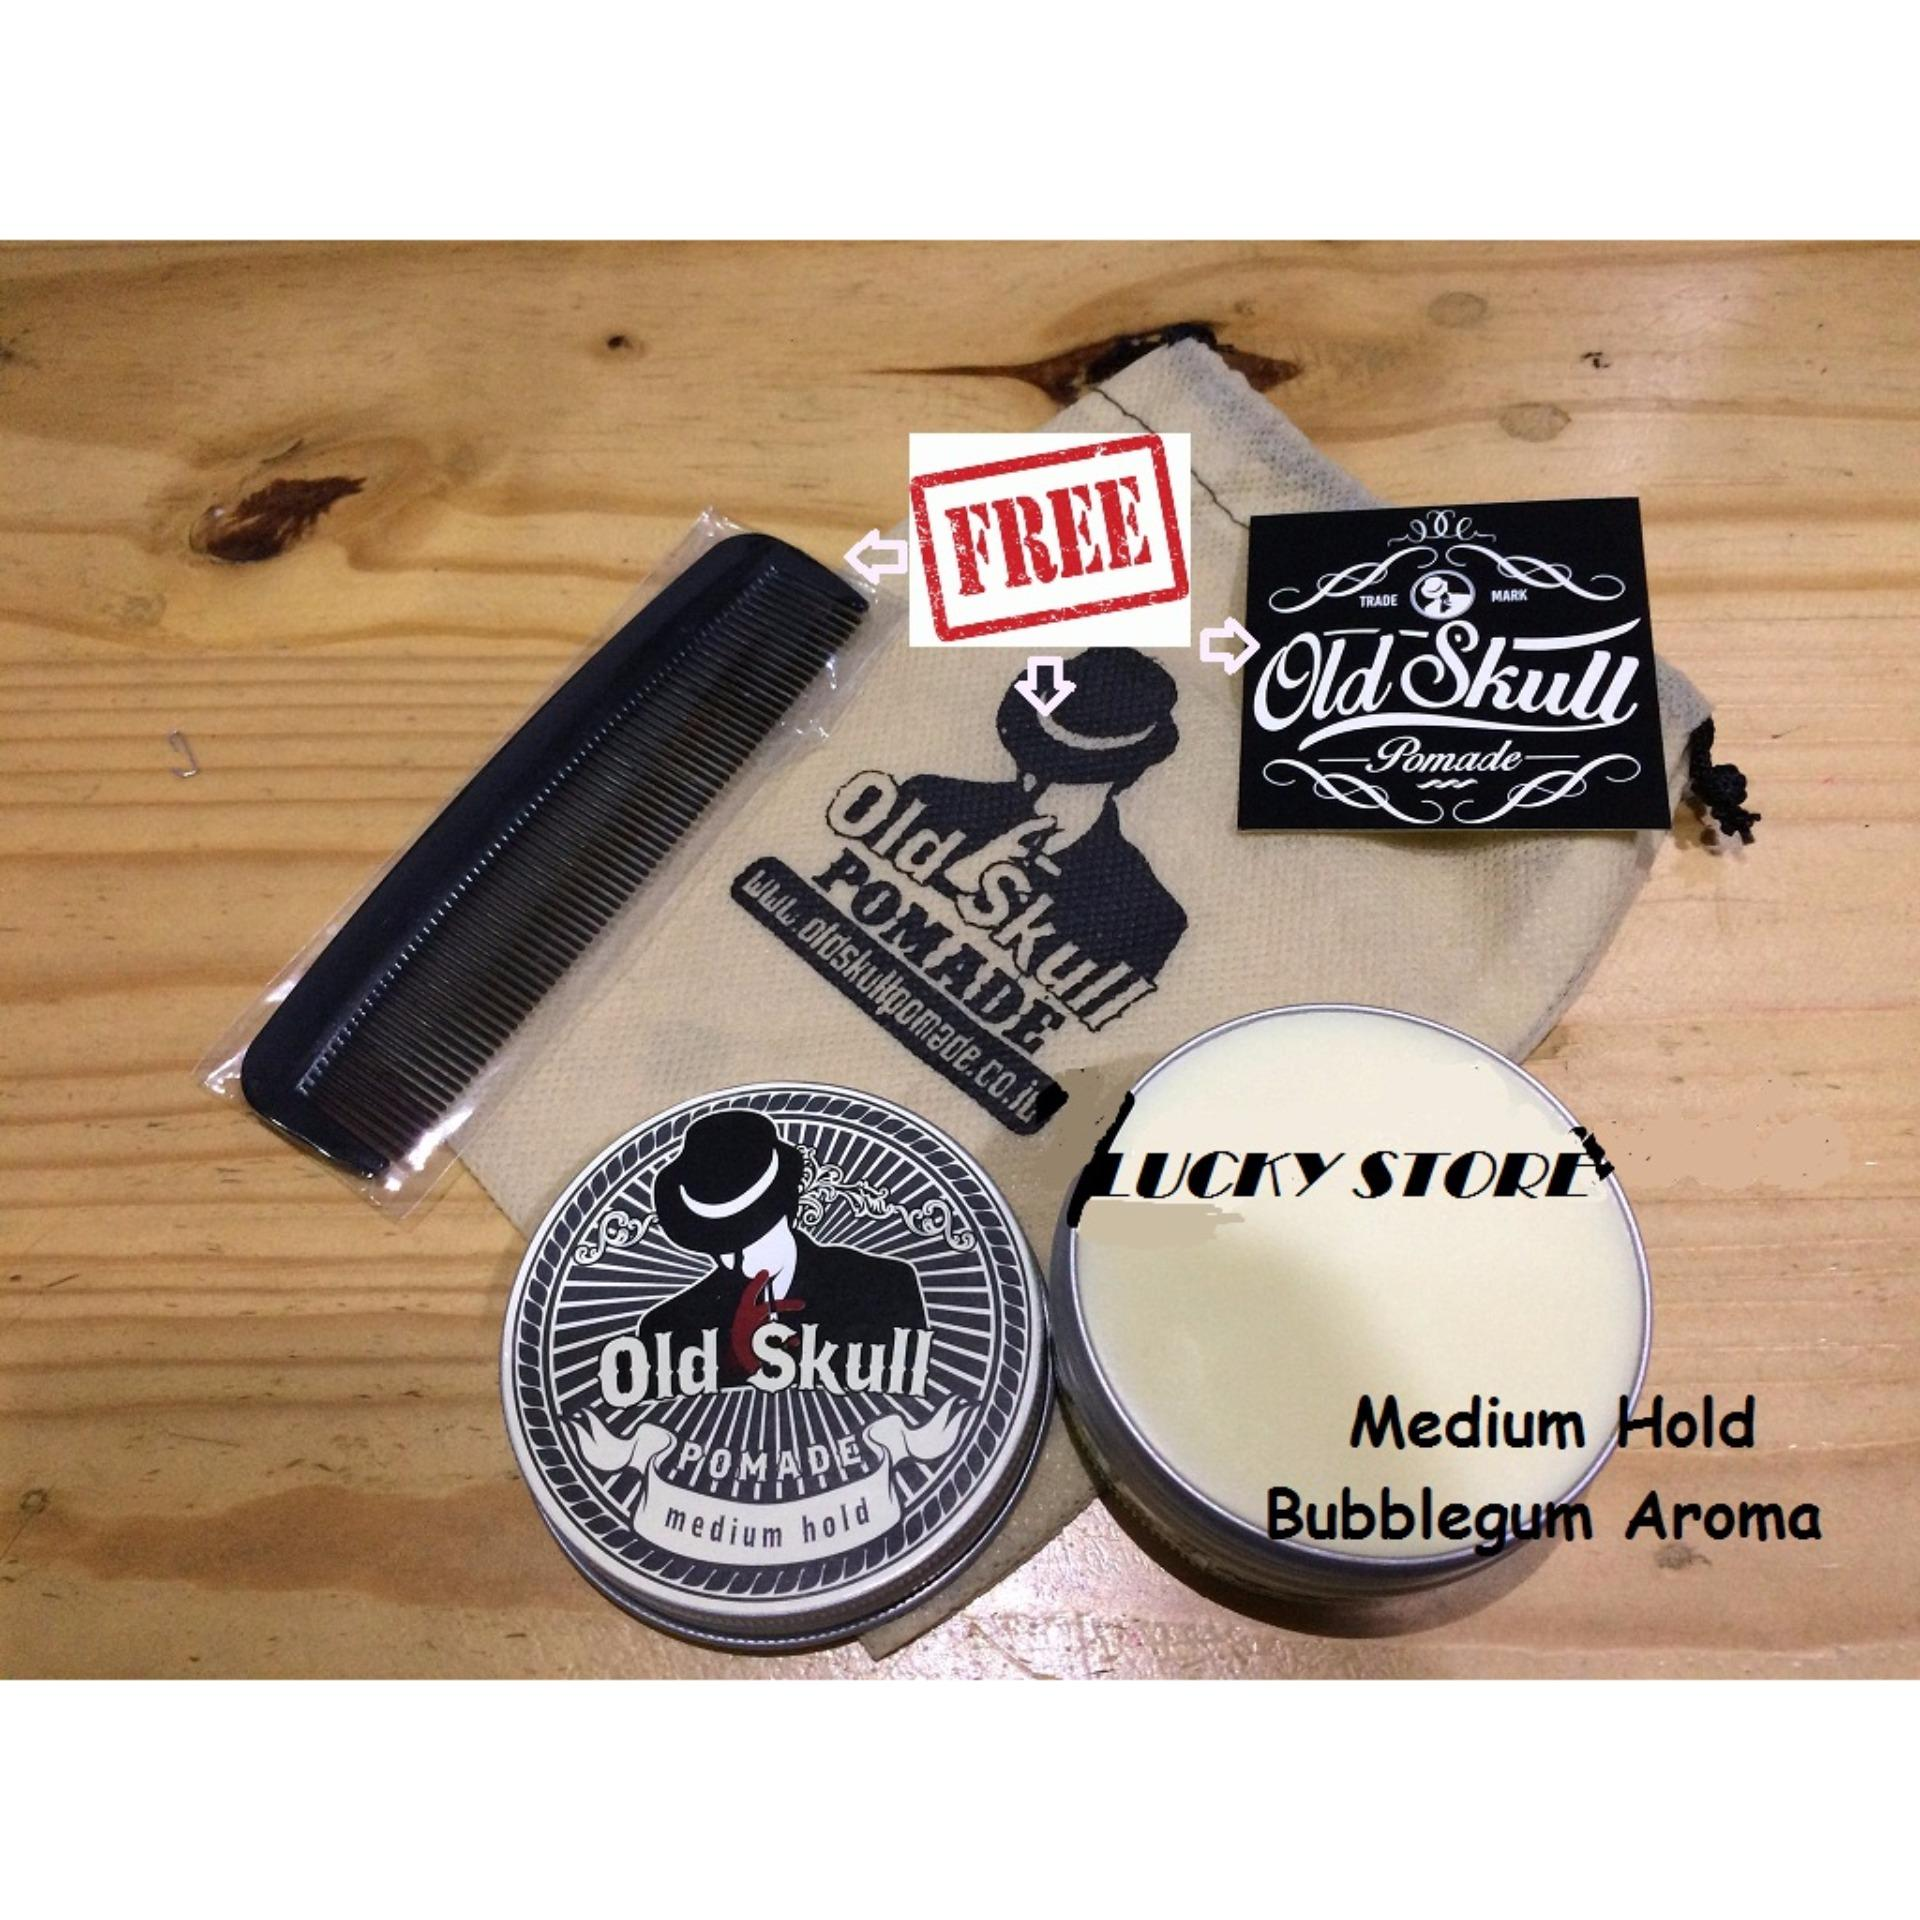 DISKON..! Pomade Oldskull Medium Hold Bubble Gum + Free Pouch + Free Bubble Wrap + Free Sisir Terbaik